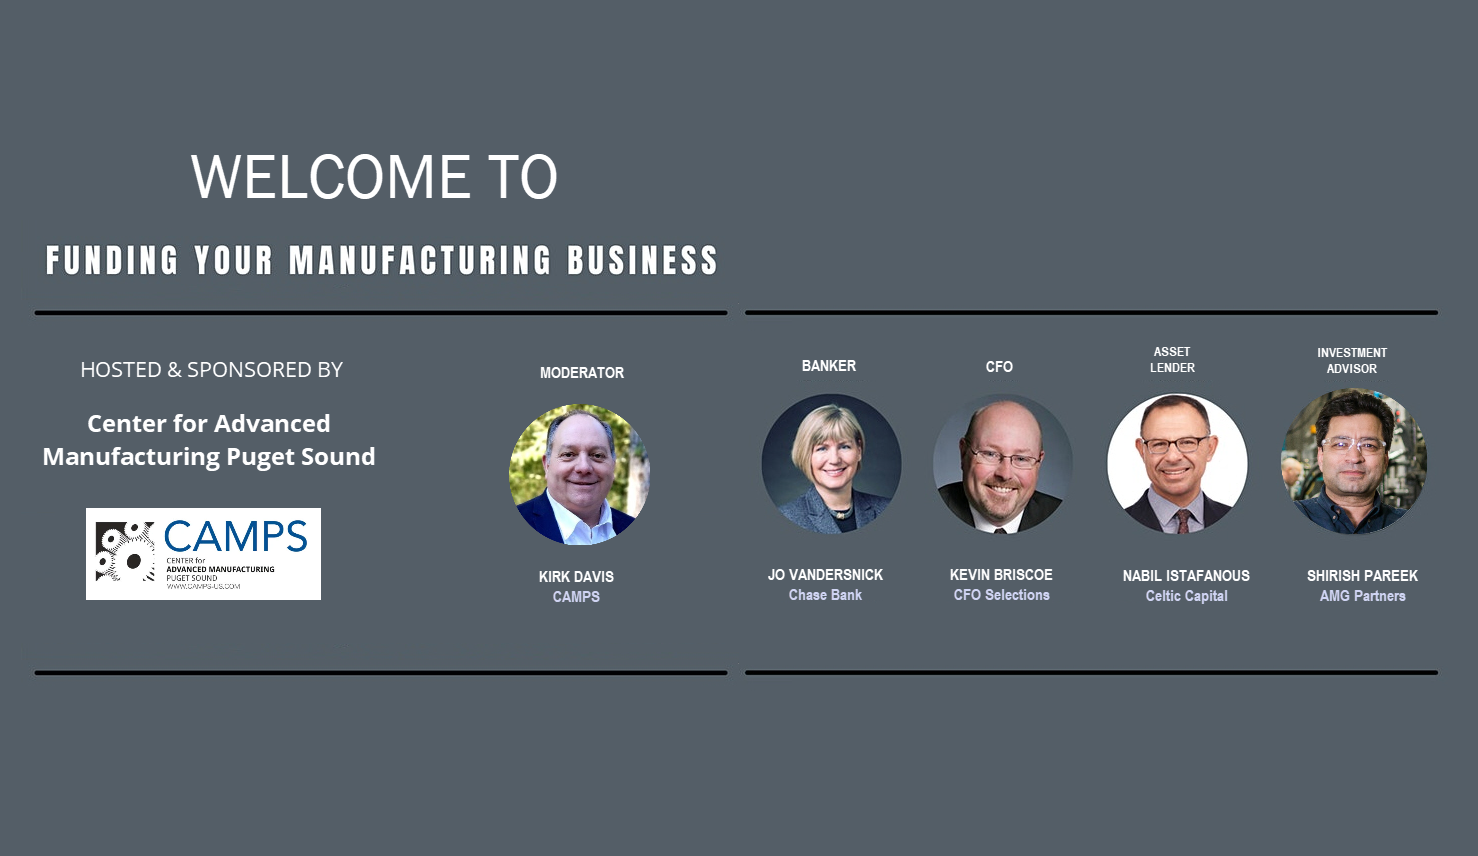 Funding your Manufacturing Business - CAMPS Event